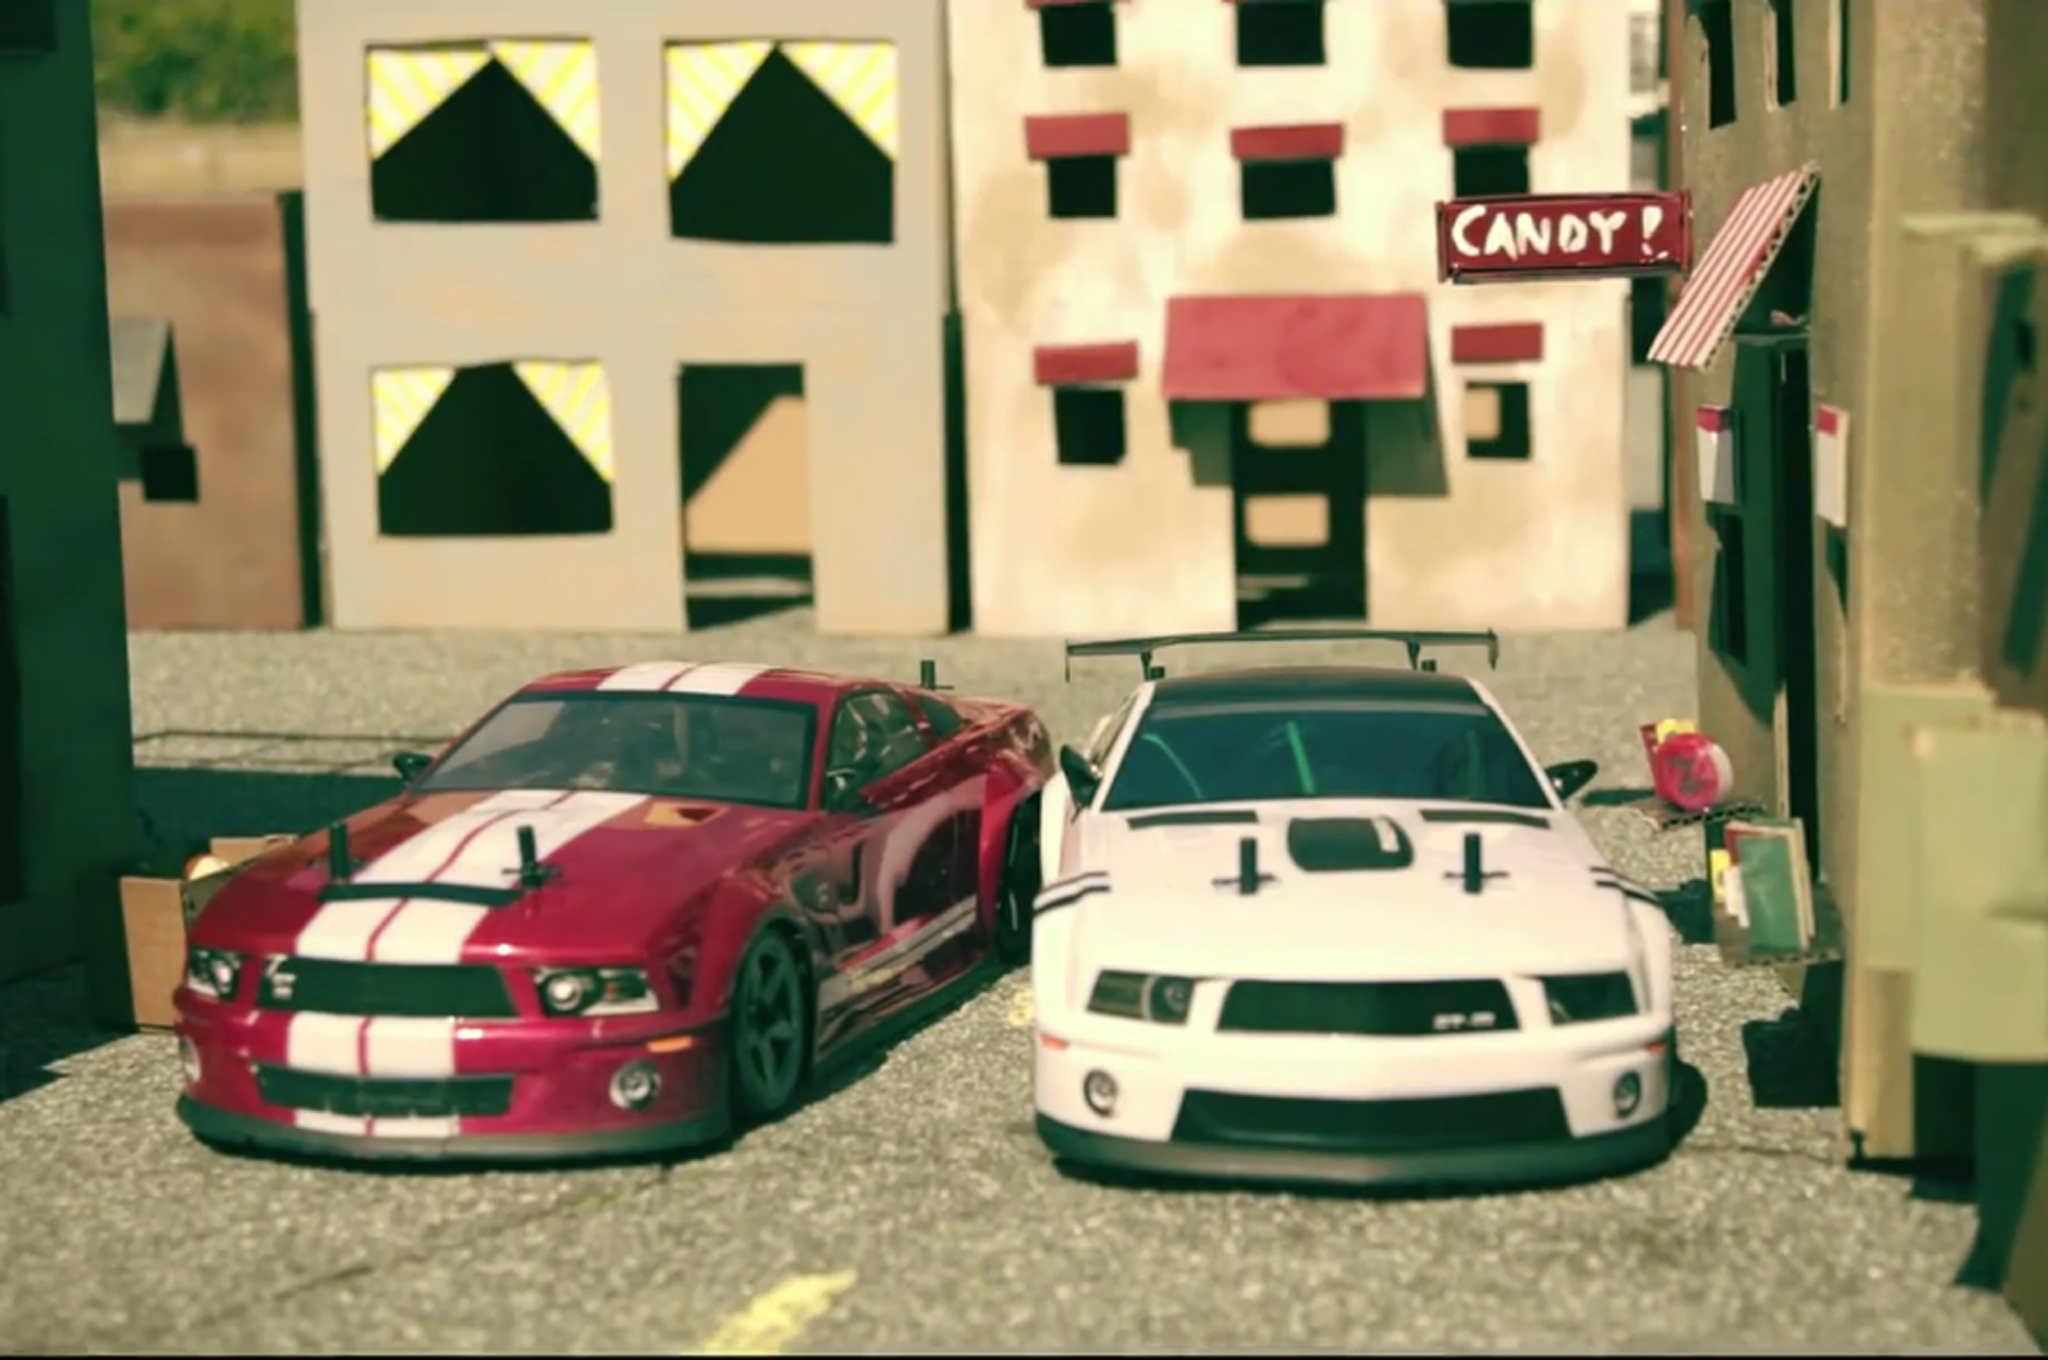 Go behind the scenes of an rc mustang chase scene in this video